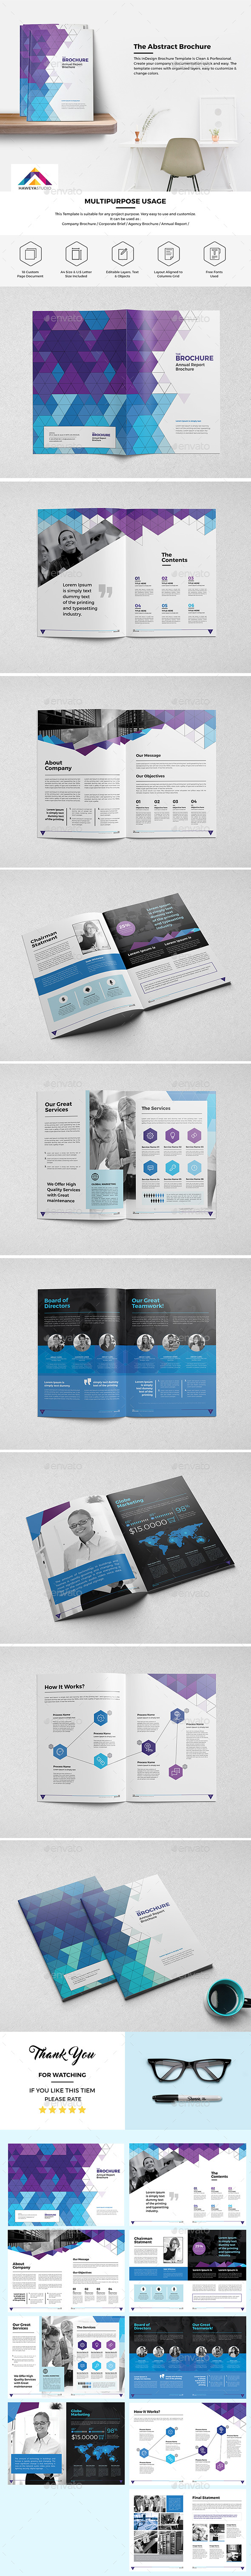 The Abstract Brochure 18 Pages - Corporate Brochures